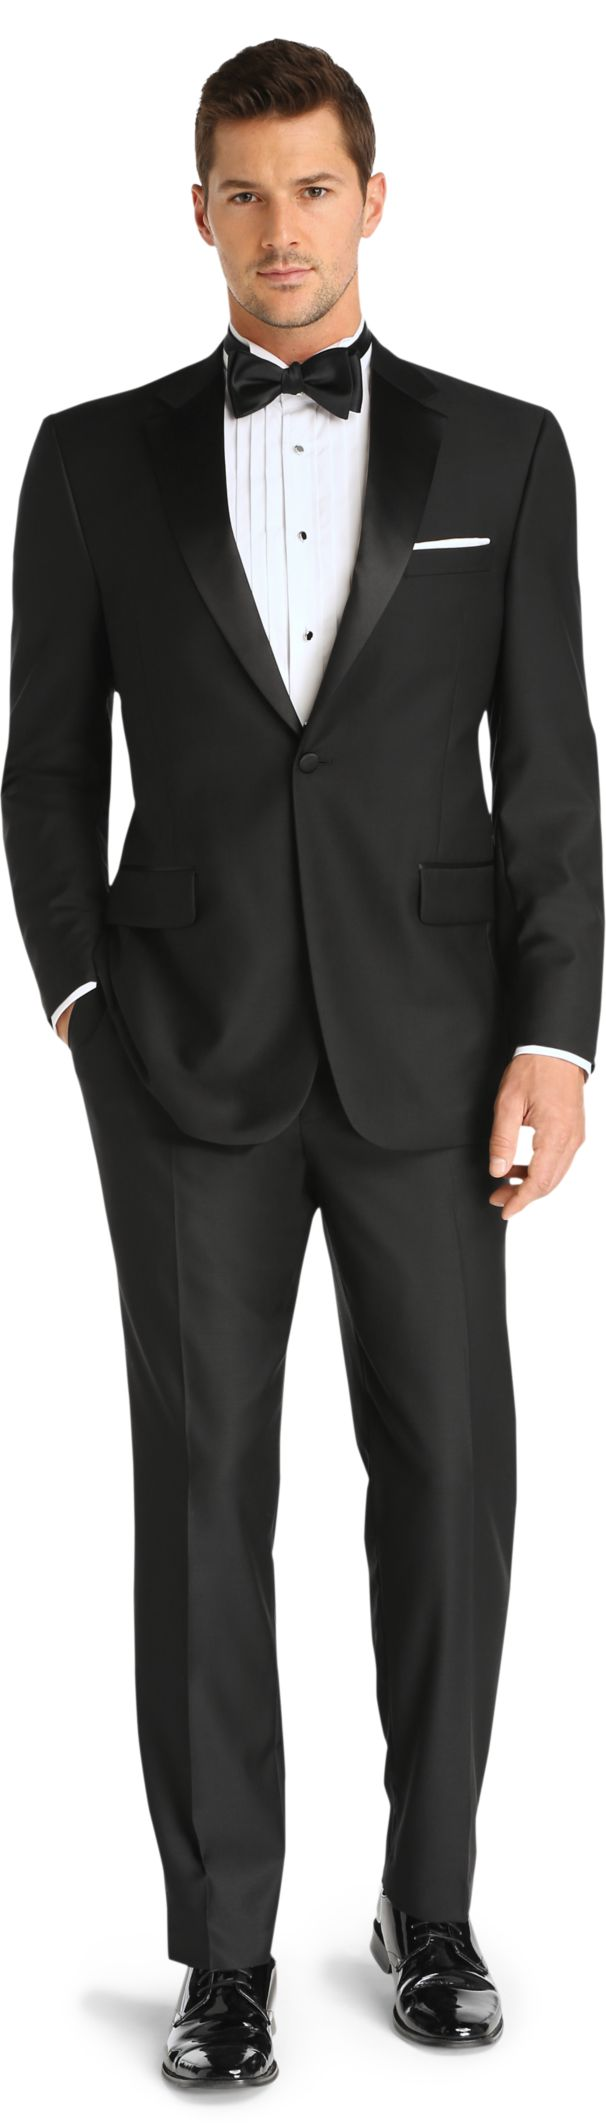 1000  images about prom on Pinterest | Navy tuxedos, Navy tux and ...